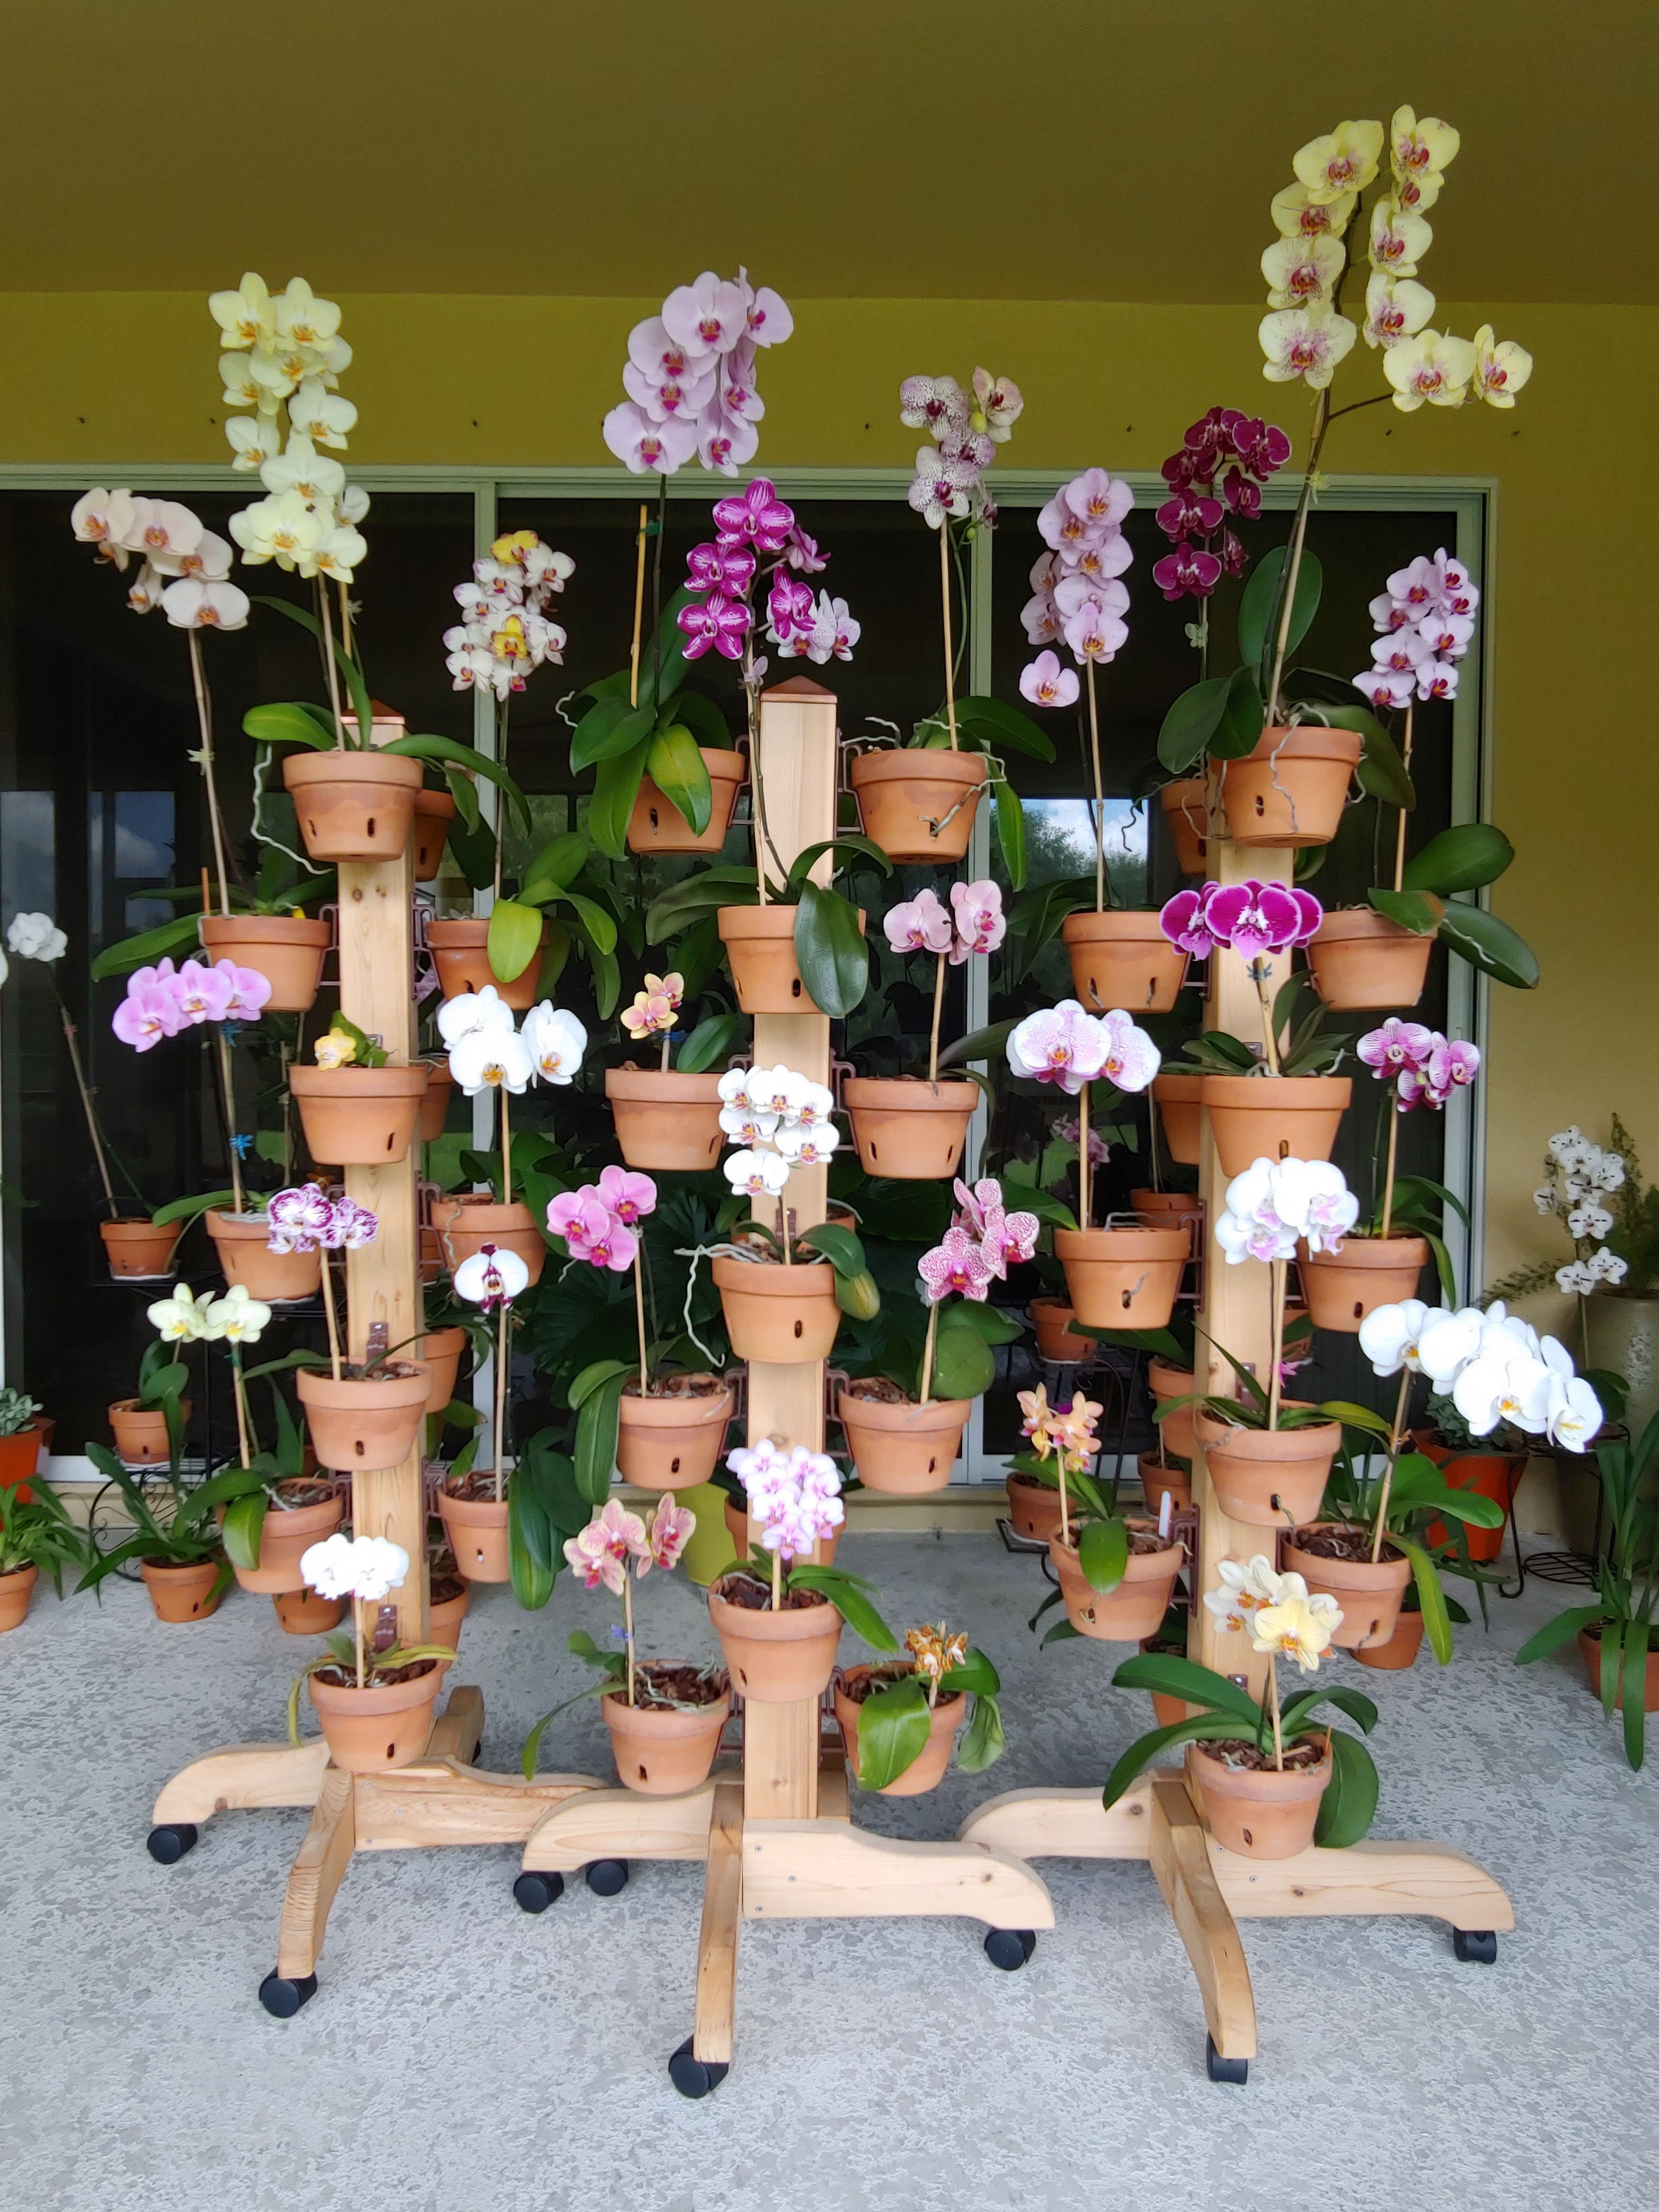 Solid Cedar Rolling Plant Stands From Hangapot Com Poles Come With Legs Wheels Cap And 16 Hangapot Flower P Hanging Flower Pots Flower Pot Hanger Flower Pole